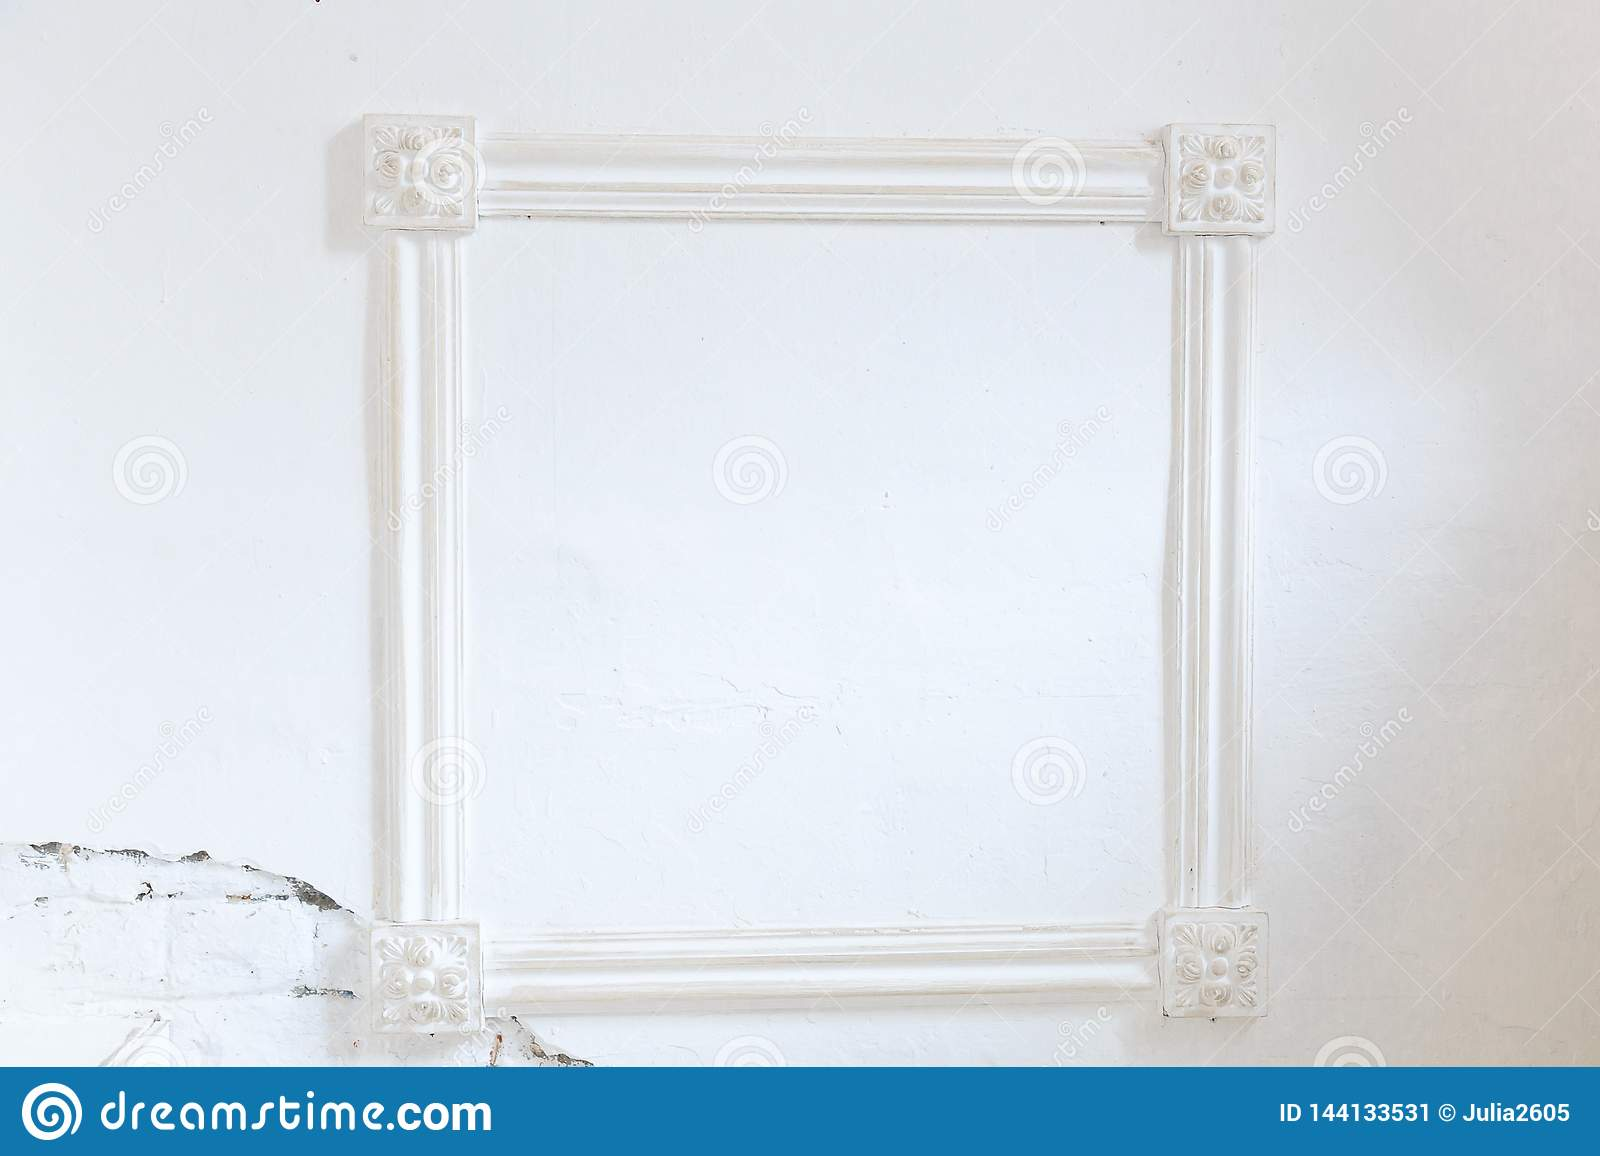 Blank frame on white wall.